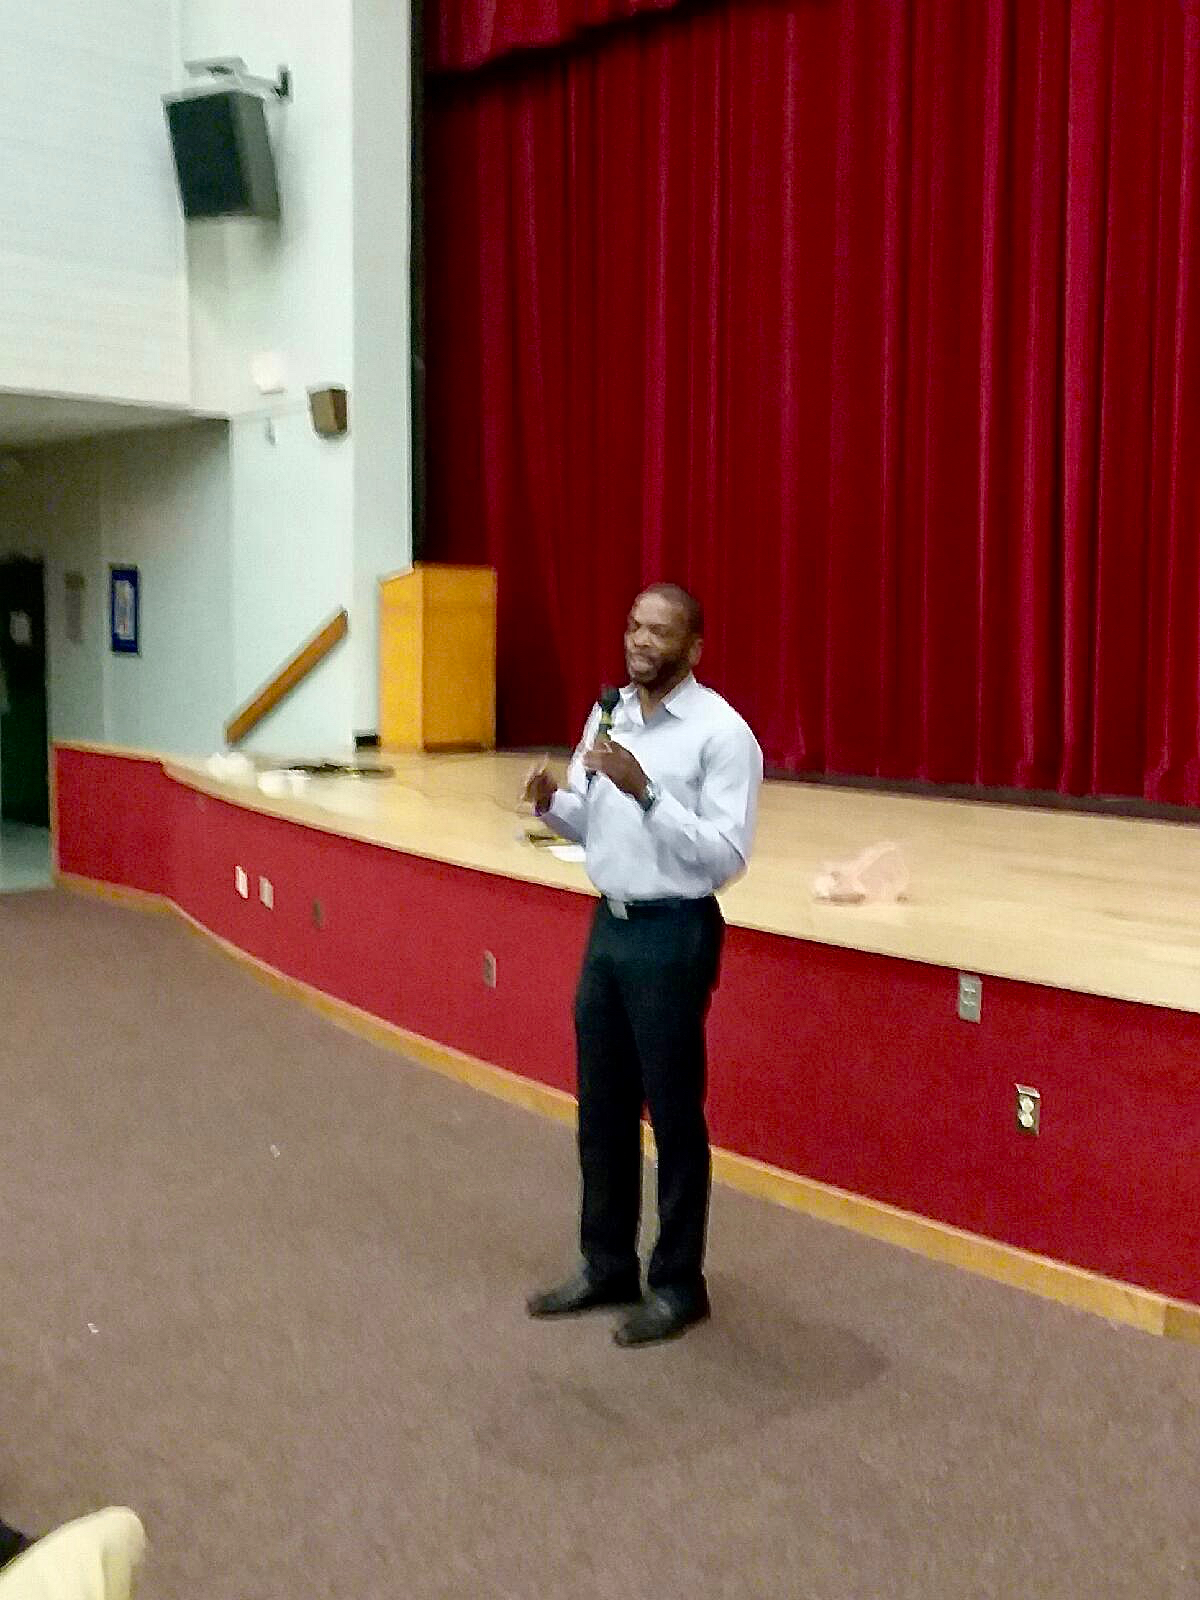 WAM discusses biomedical forms of HIV prevention Deerfield Beach High School Health Forum 04-03-17